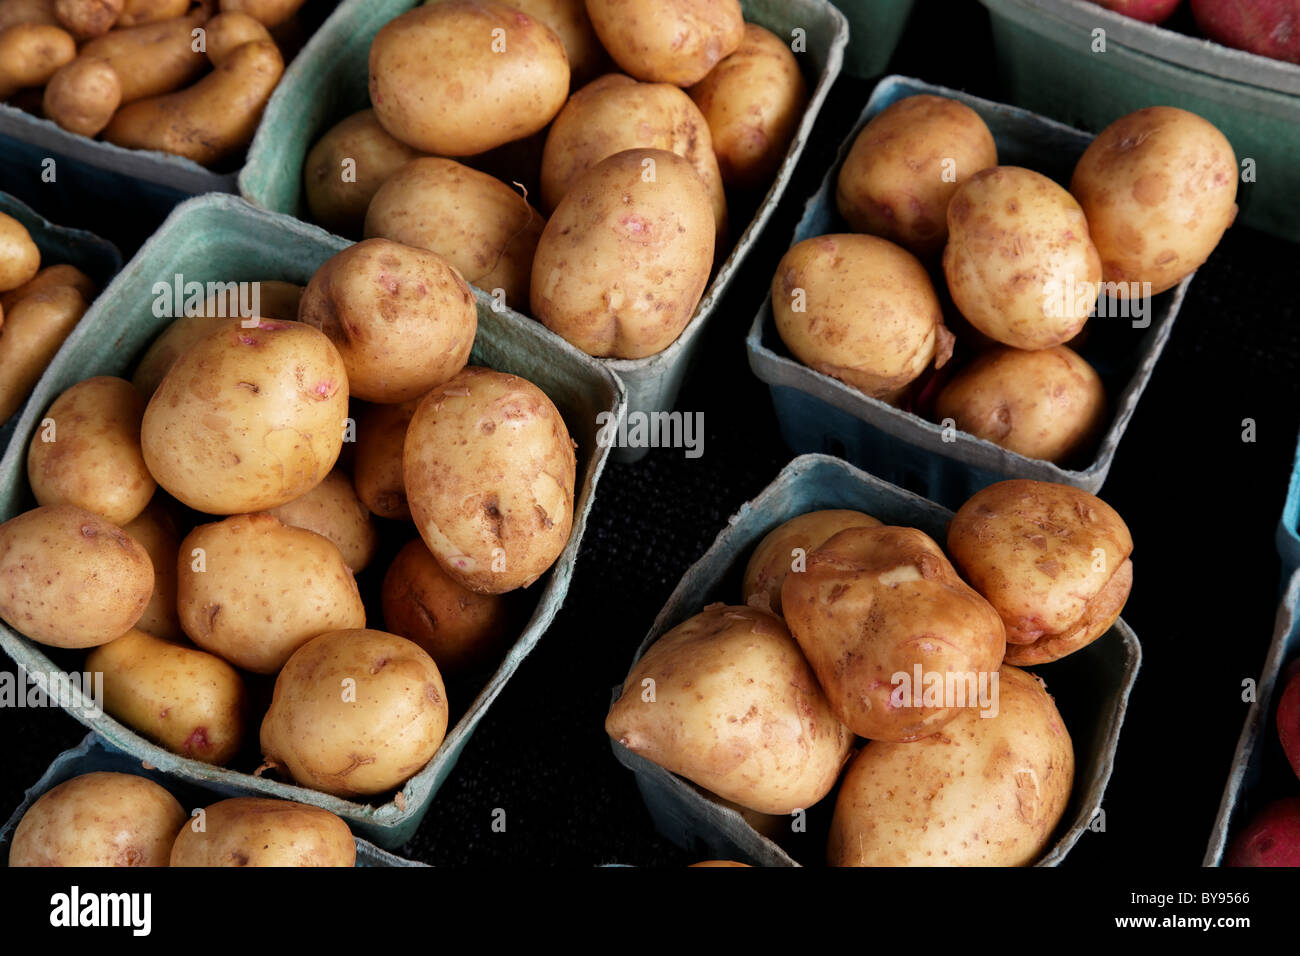 Fresh market potatoes - Stock Image